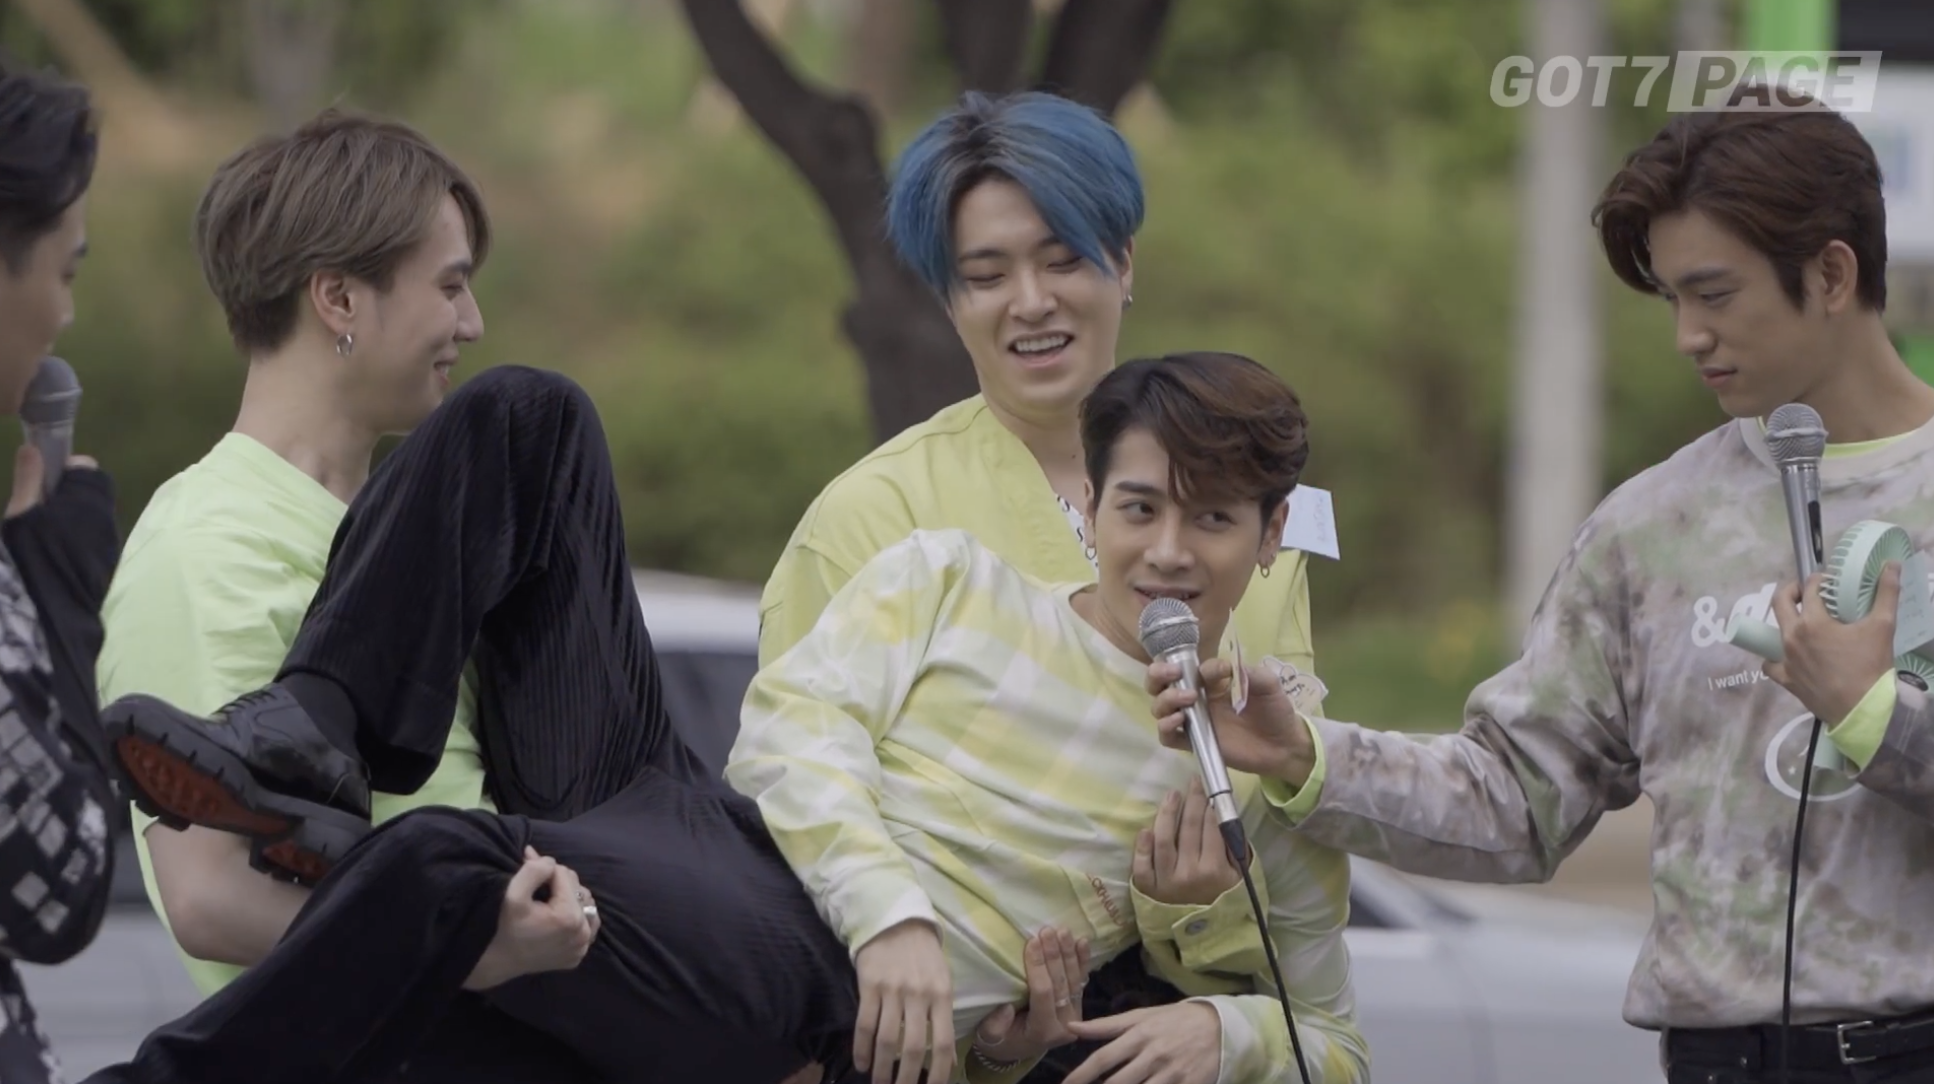 🌀 it's another GOT7 round-up 🌀: omonatheydidnt — LiveJournal